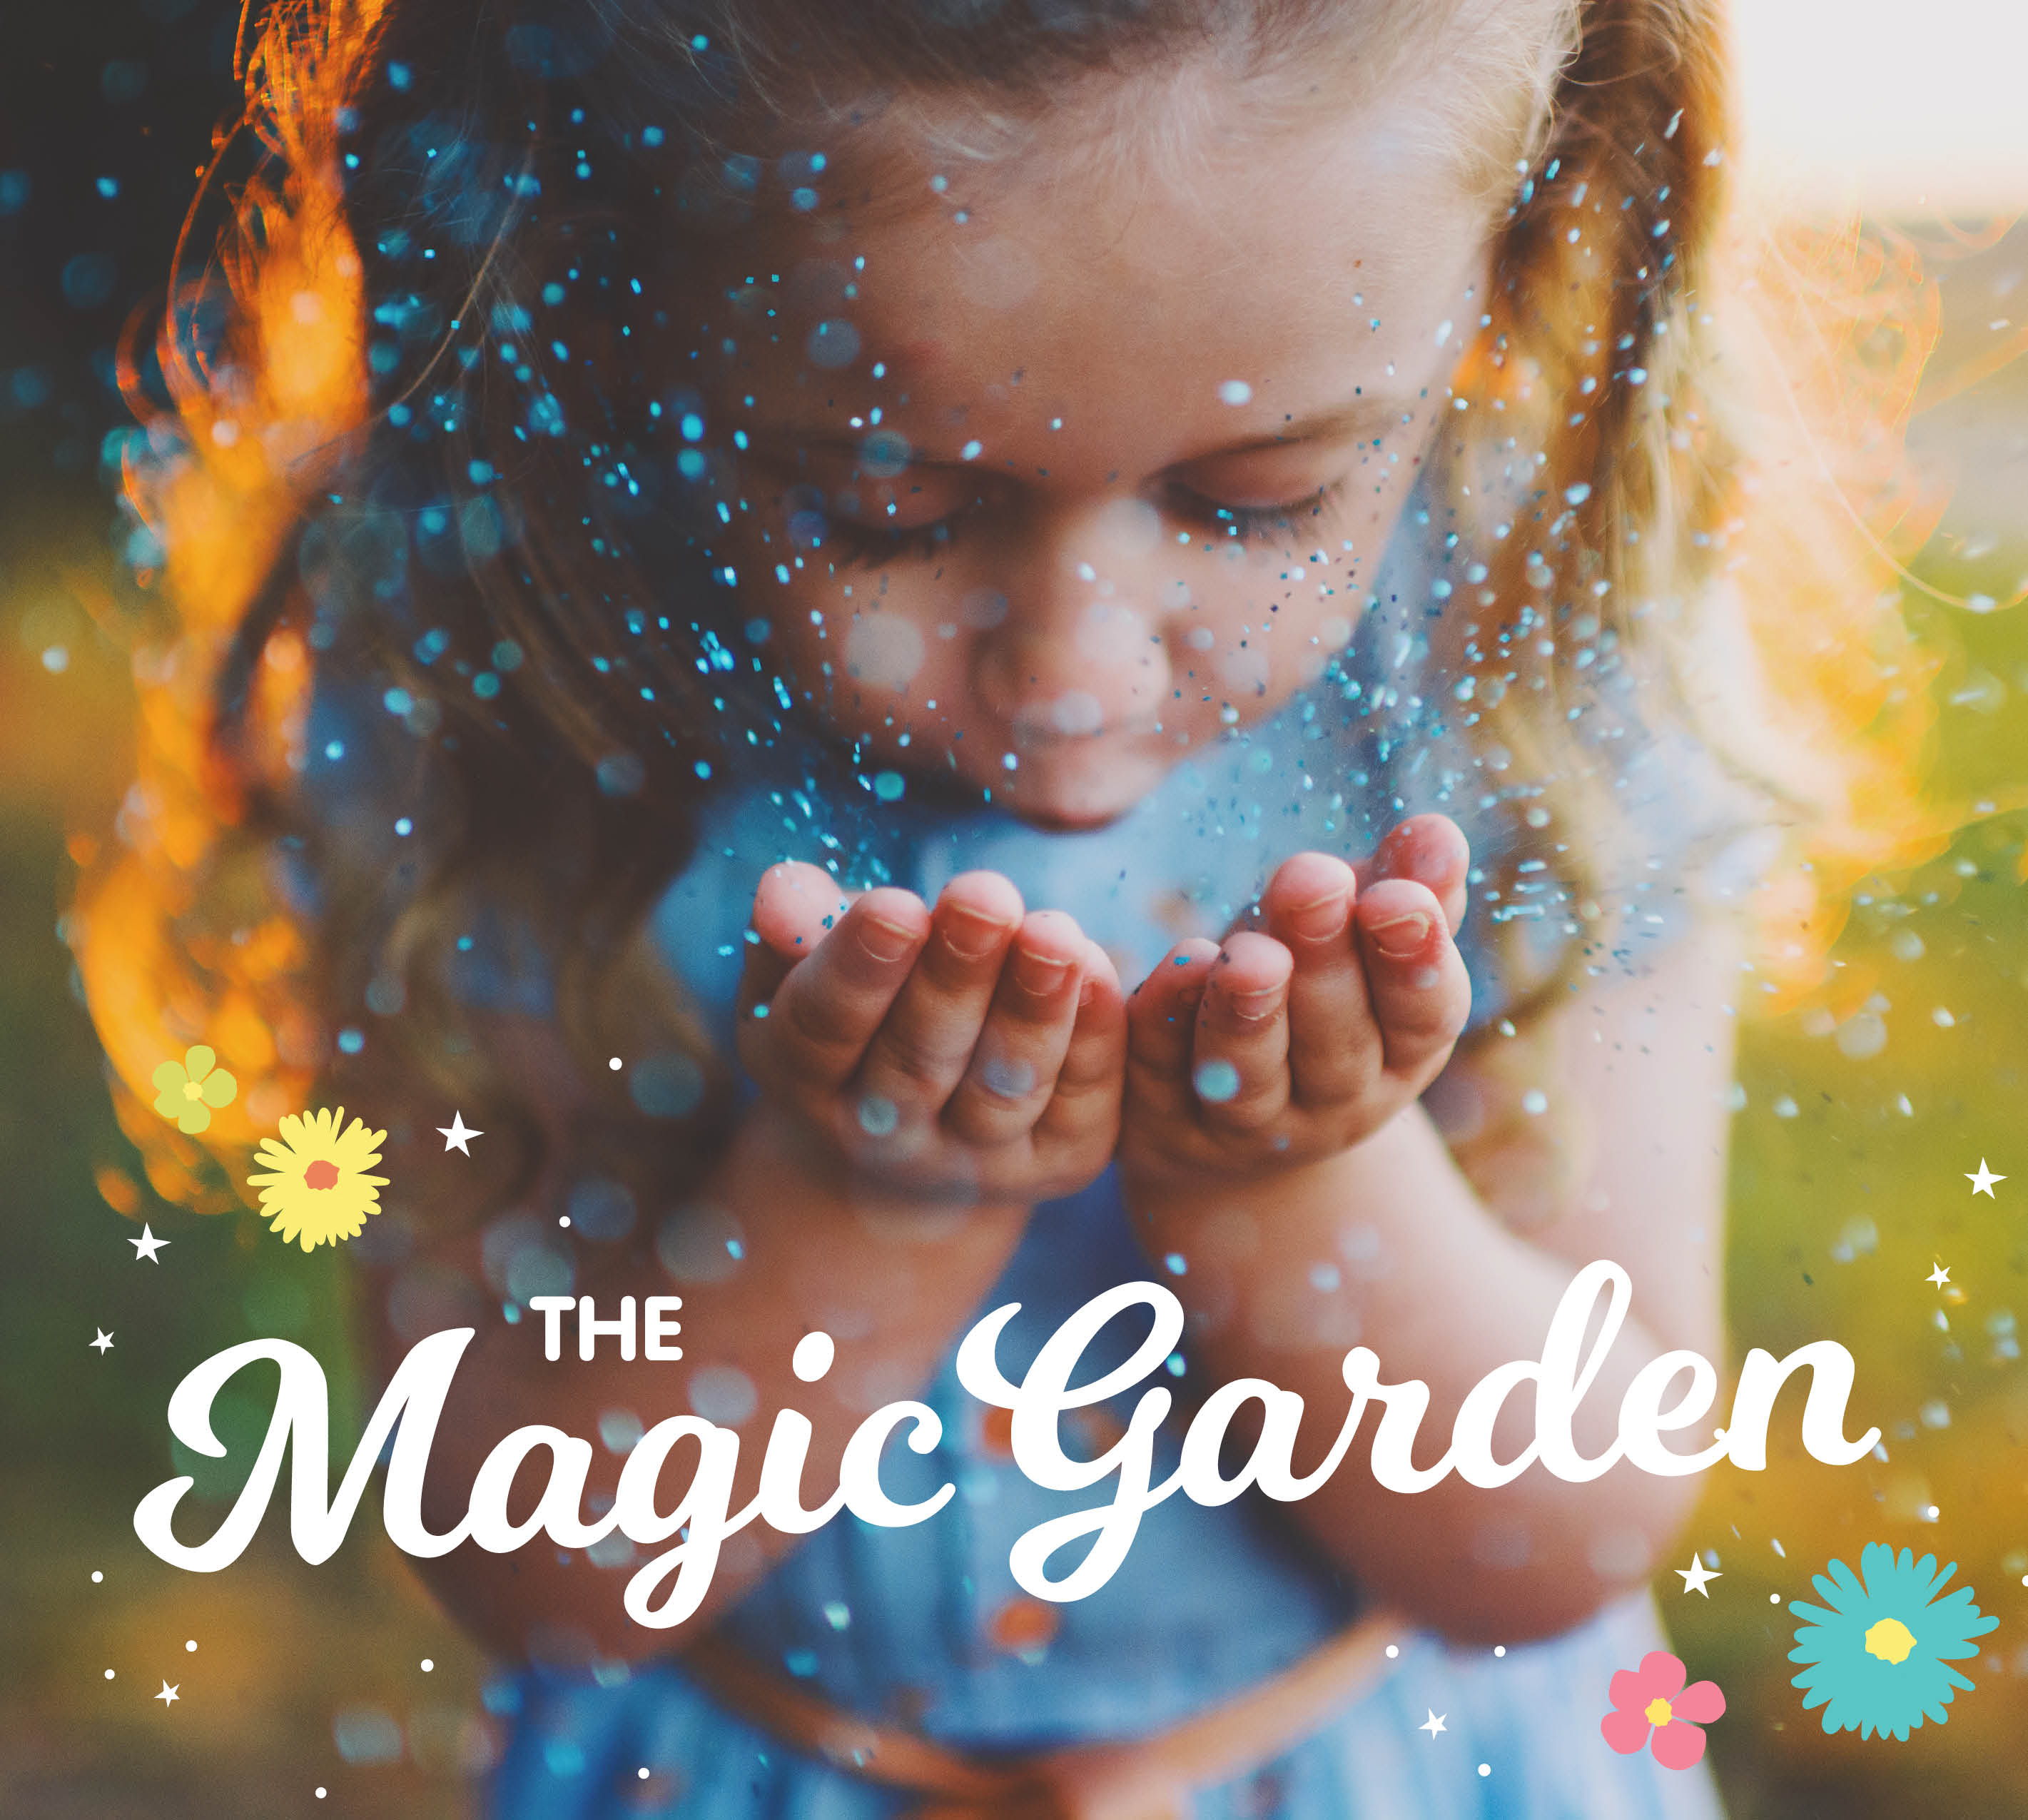 CH2925_Charter Hall_CampbelltownMall_Magic Garden-Web-DetailPageTile-682x612-@2